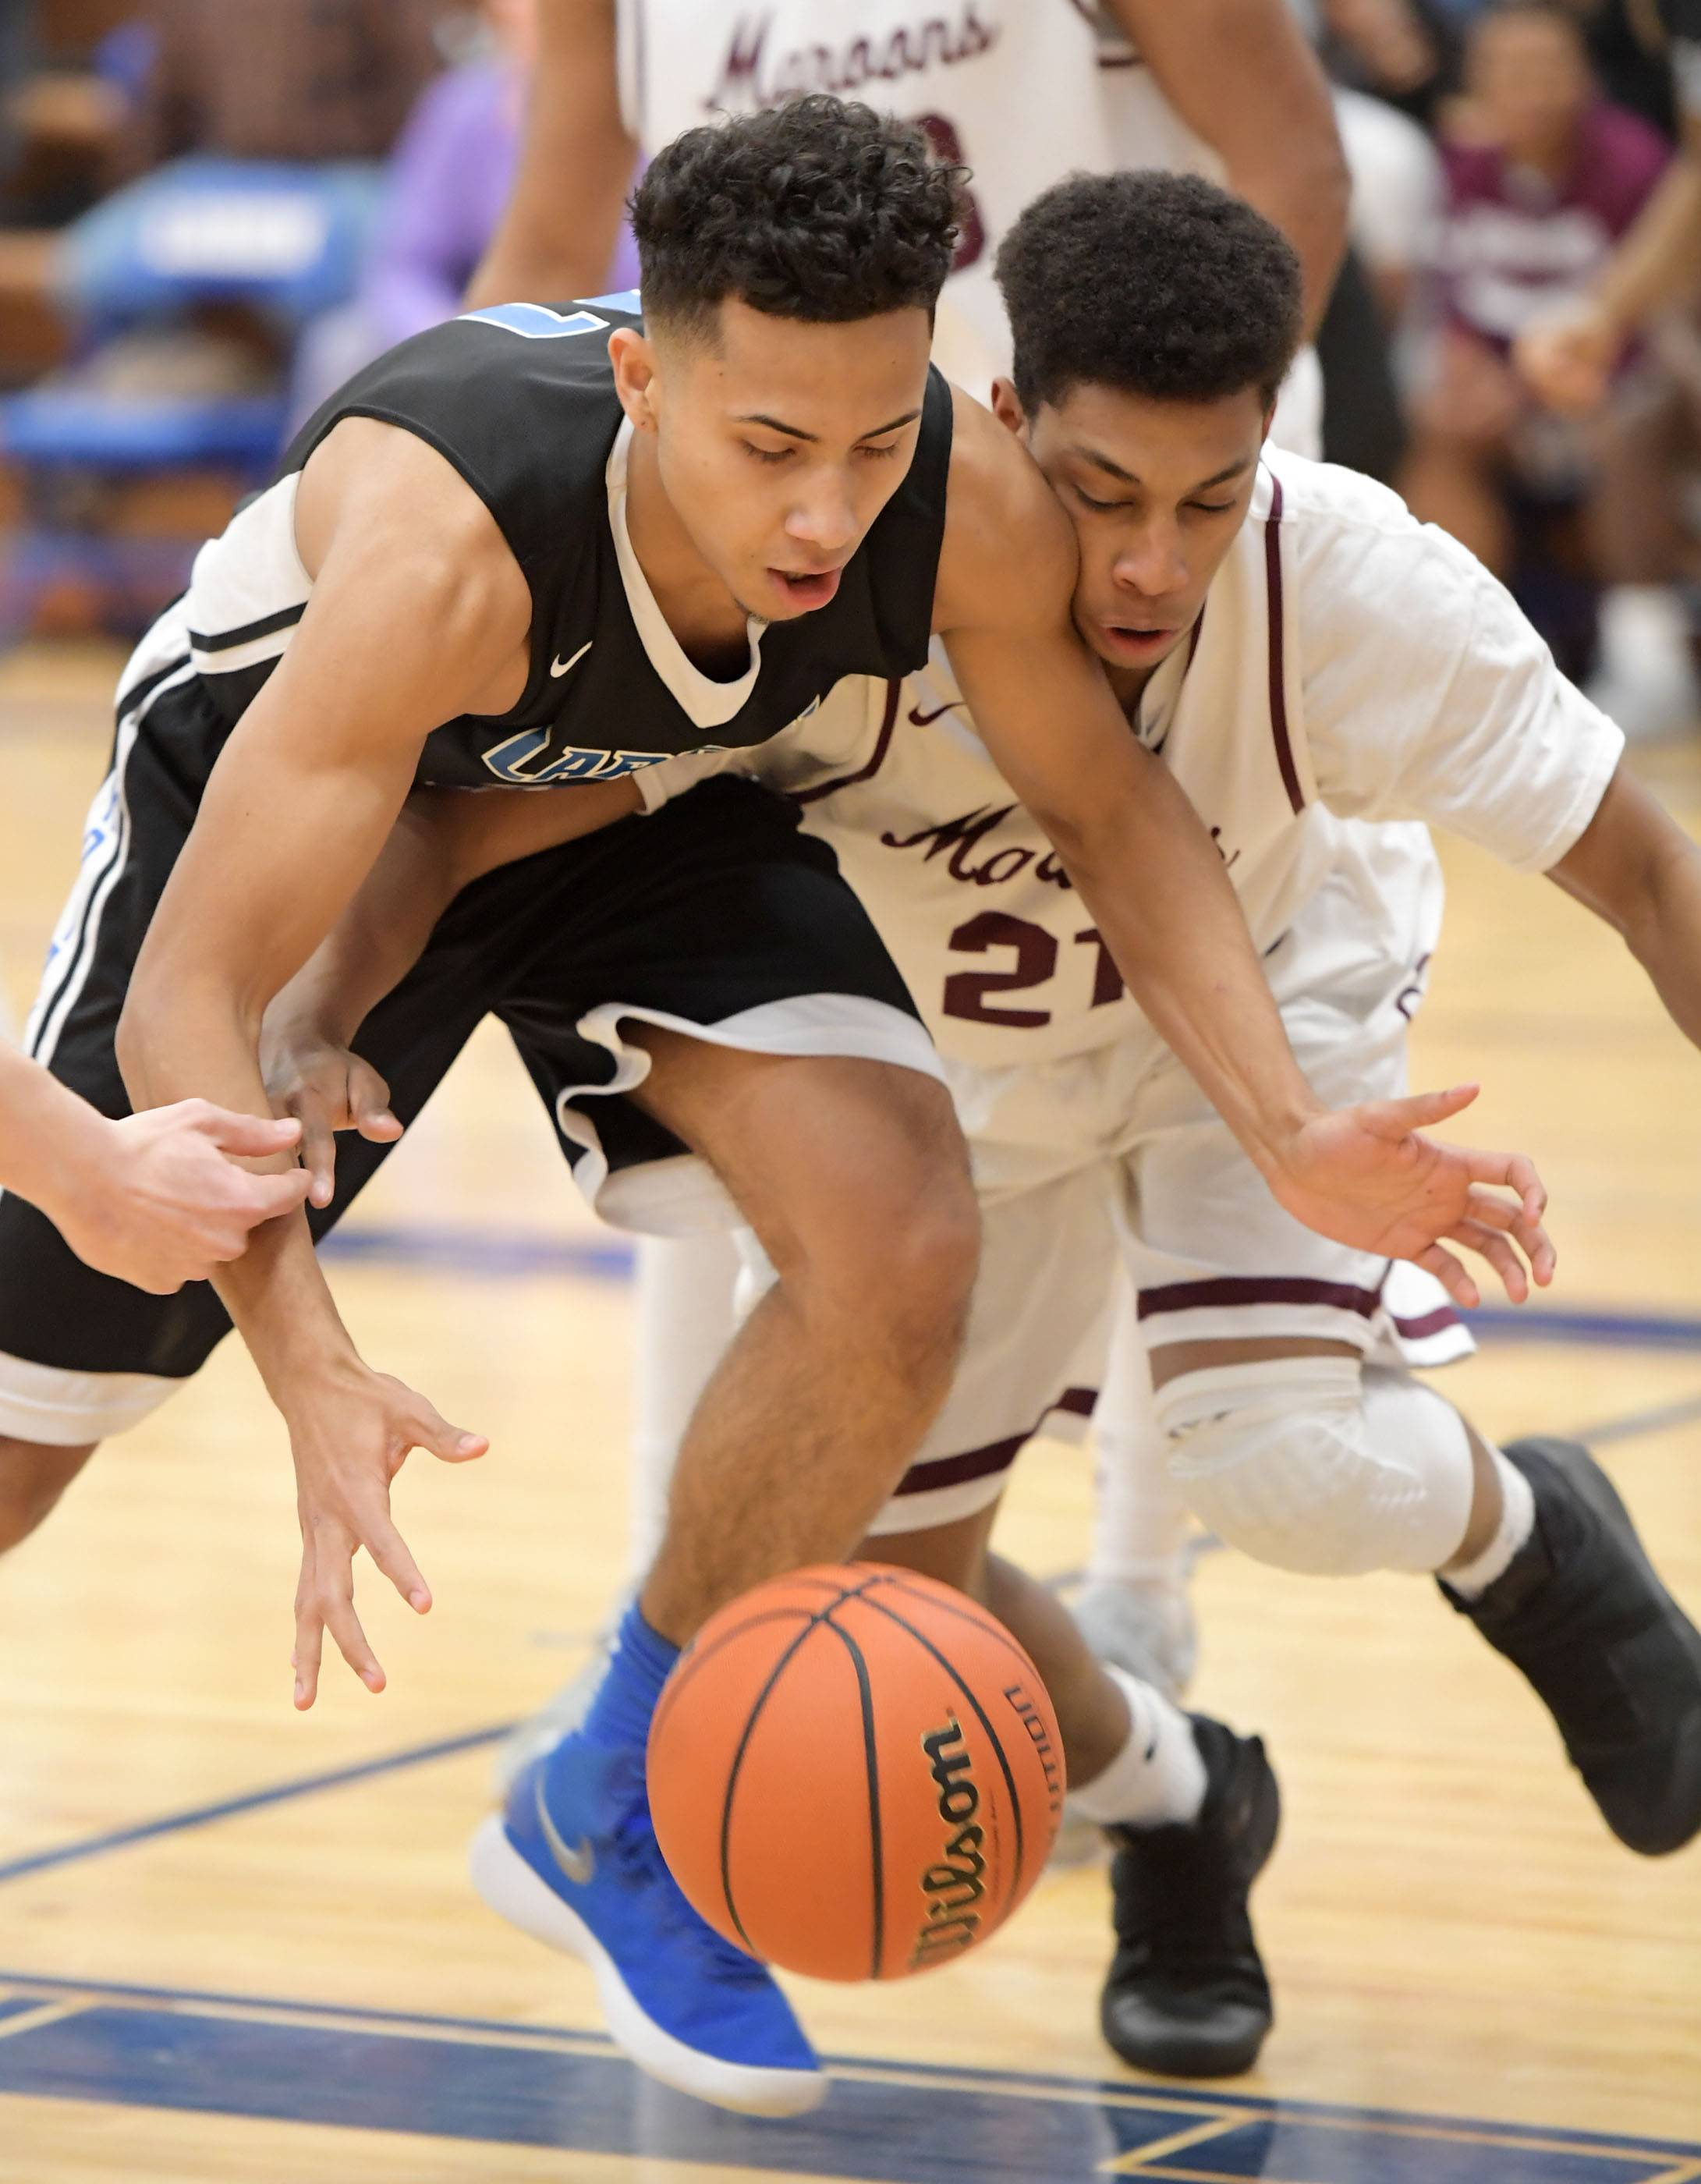 Larkin's Anthony Lynch and Elgin's Michael Weatherburn compete for the ball Friday in a boys basketball game at Larkin High School.